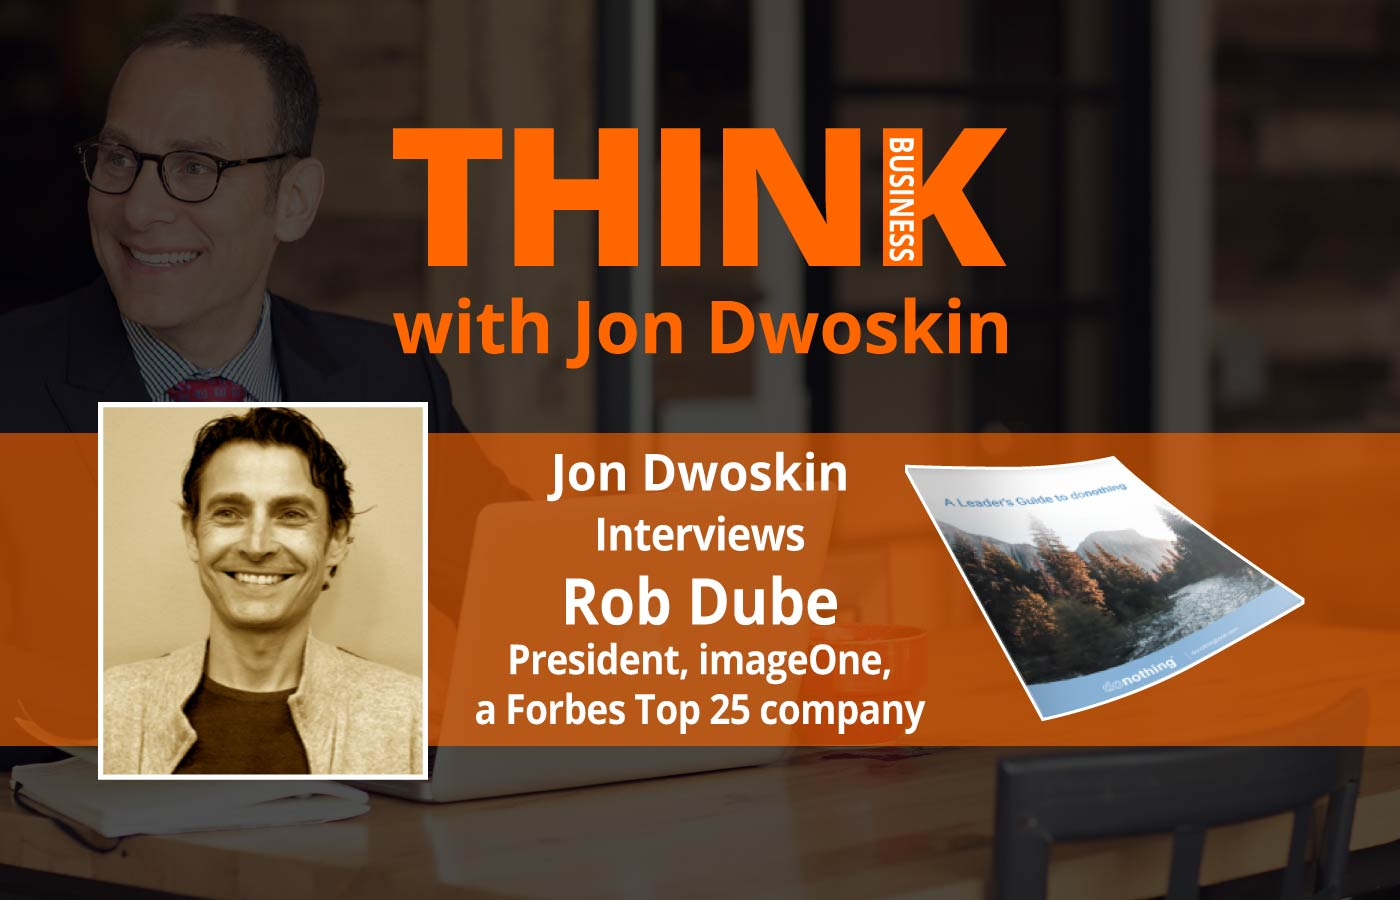 THINK Business: Jon Dwoskin Interviews Rob Dube